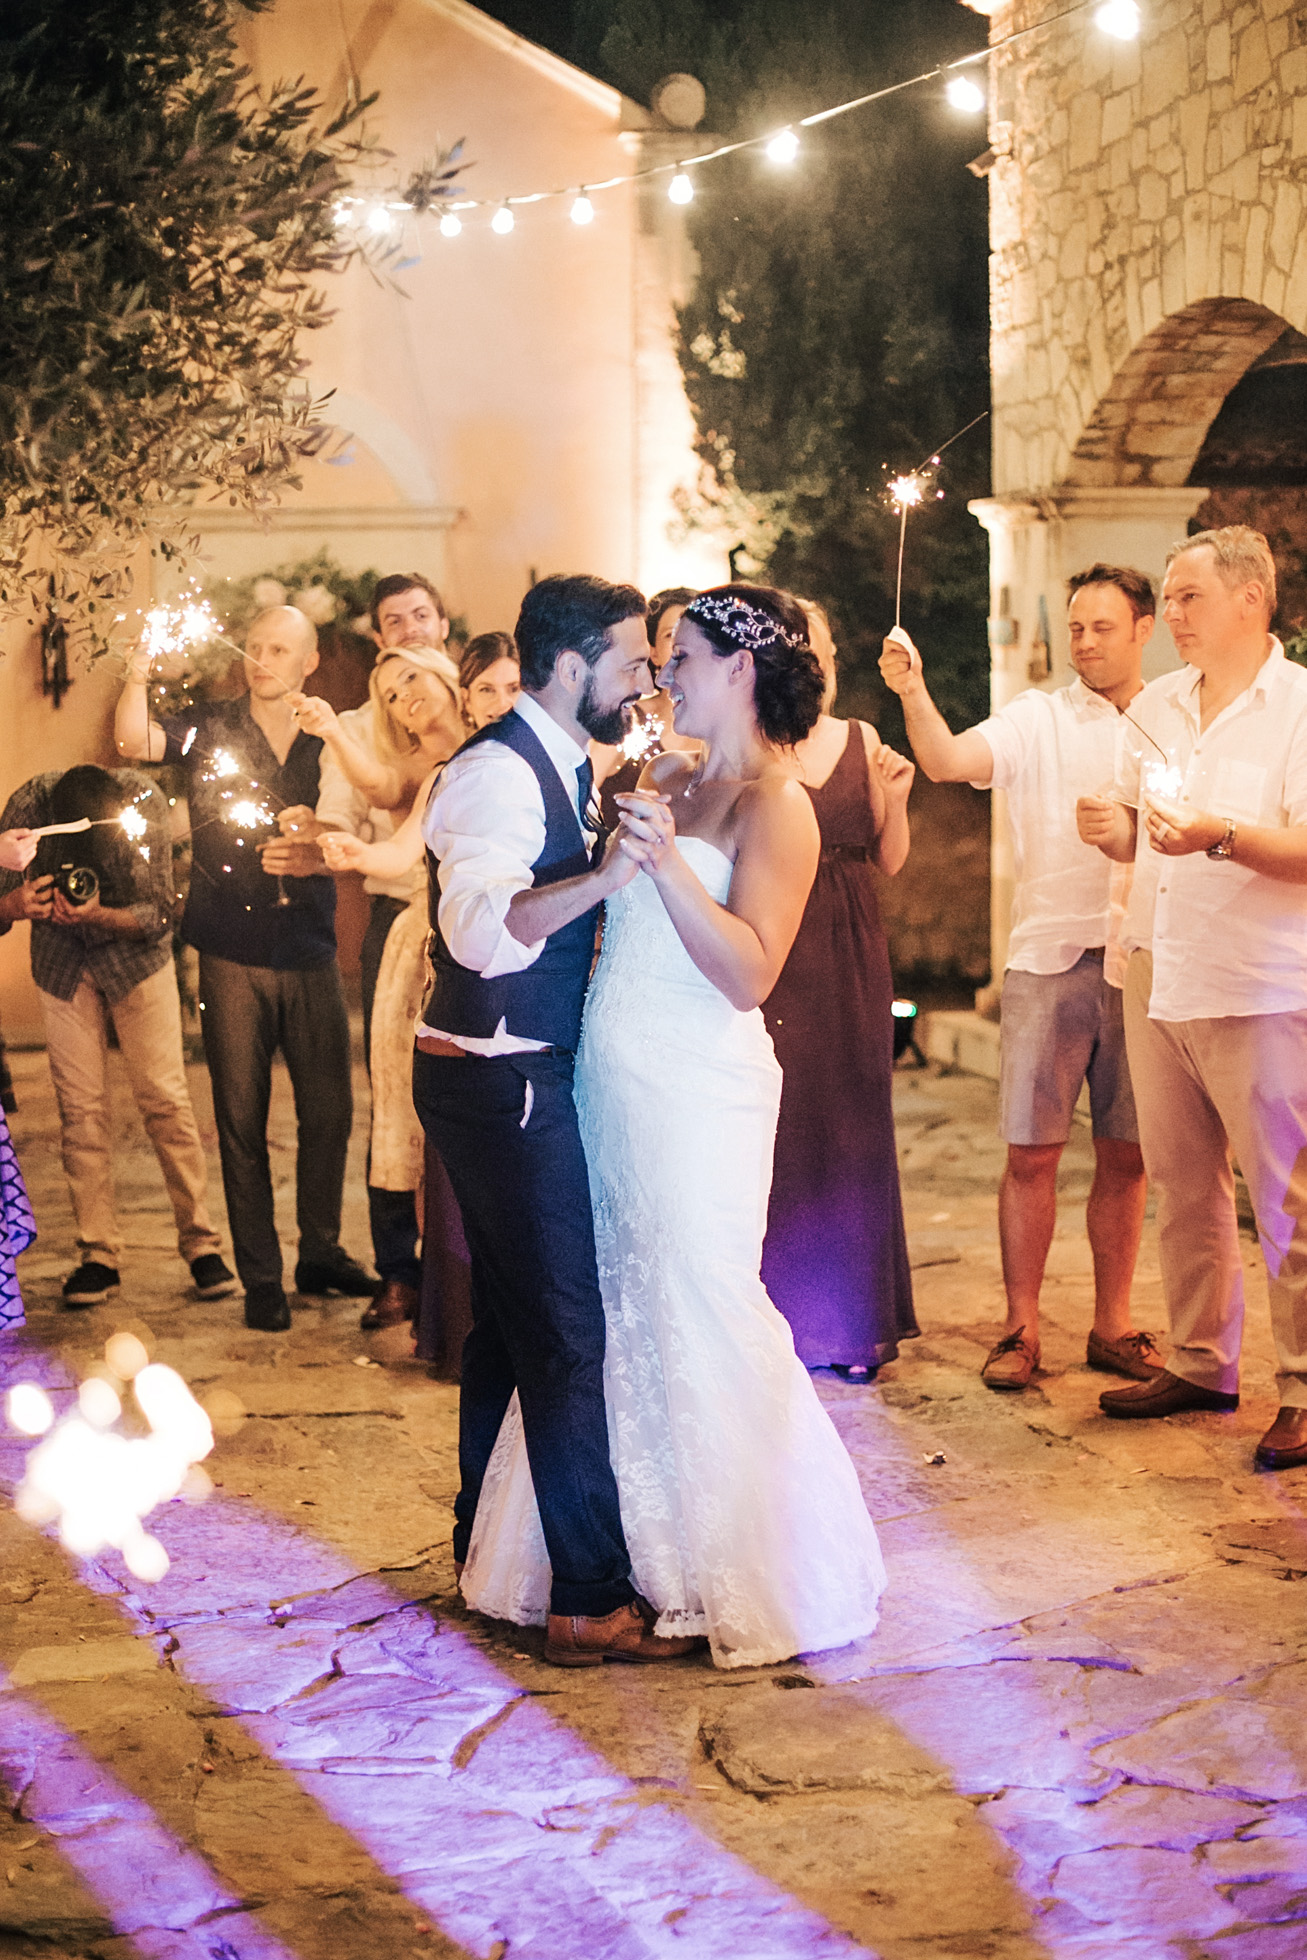 Candid evening images of bride and groom at their sparkler lit wedding reception in Agreco Farm, Crete, Greece.